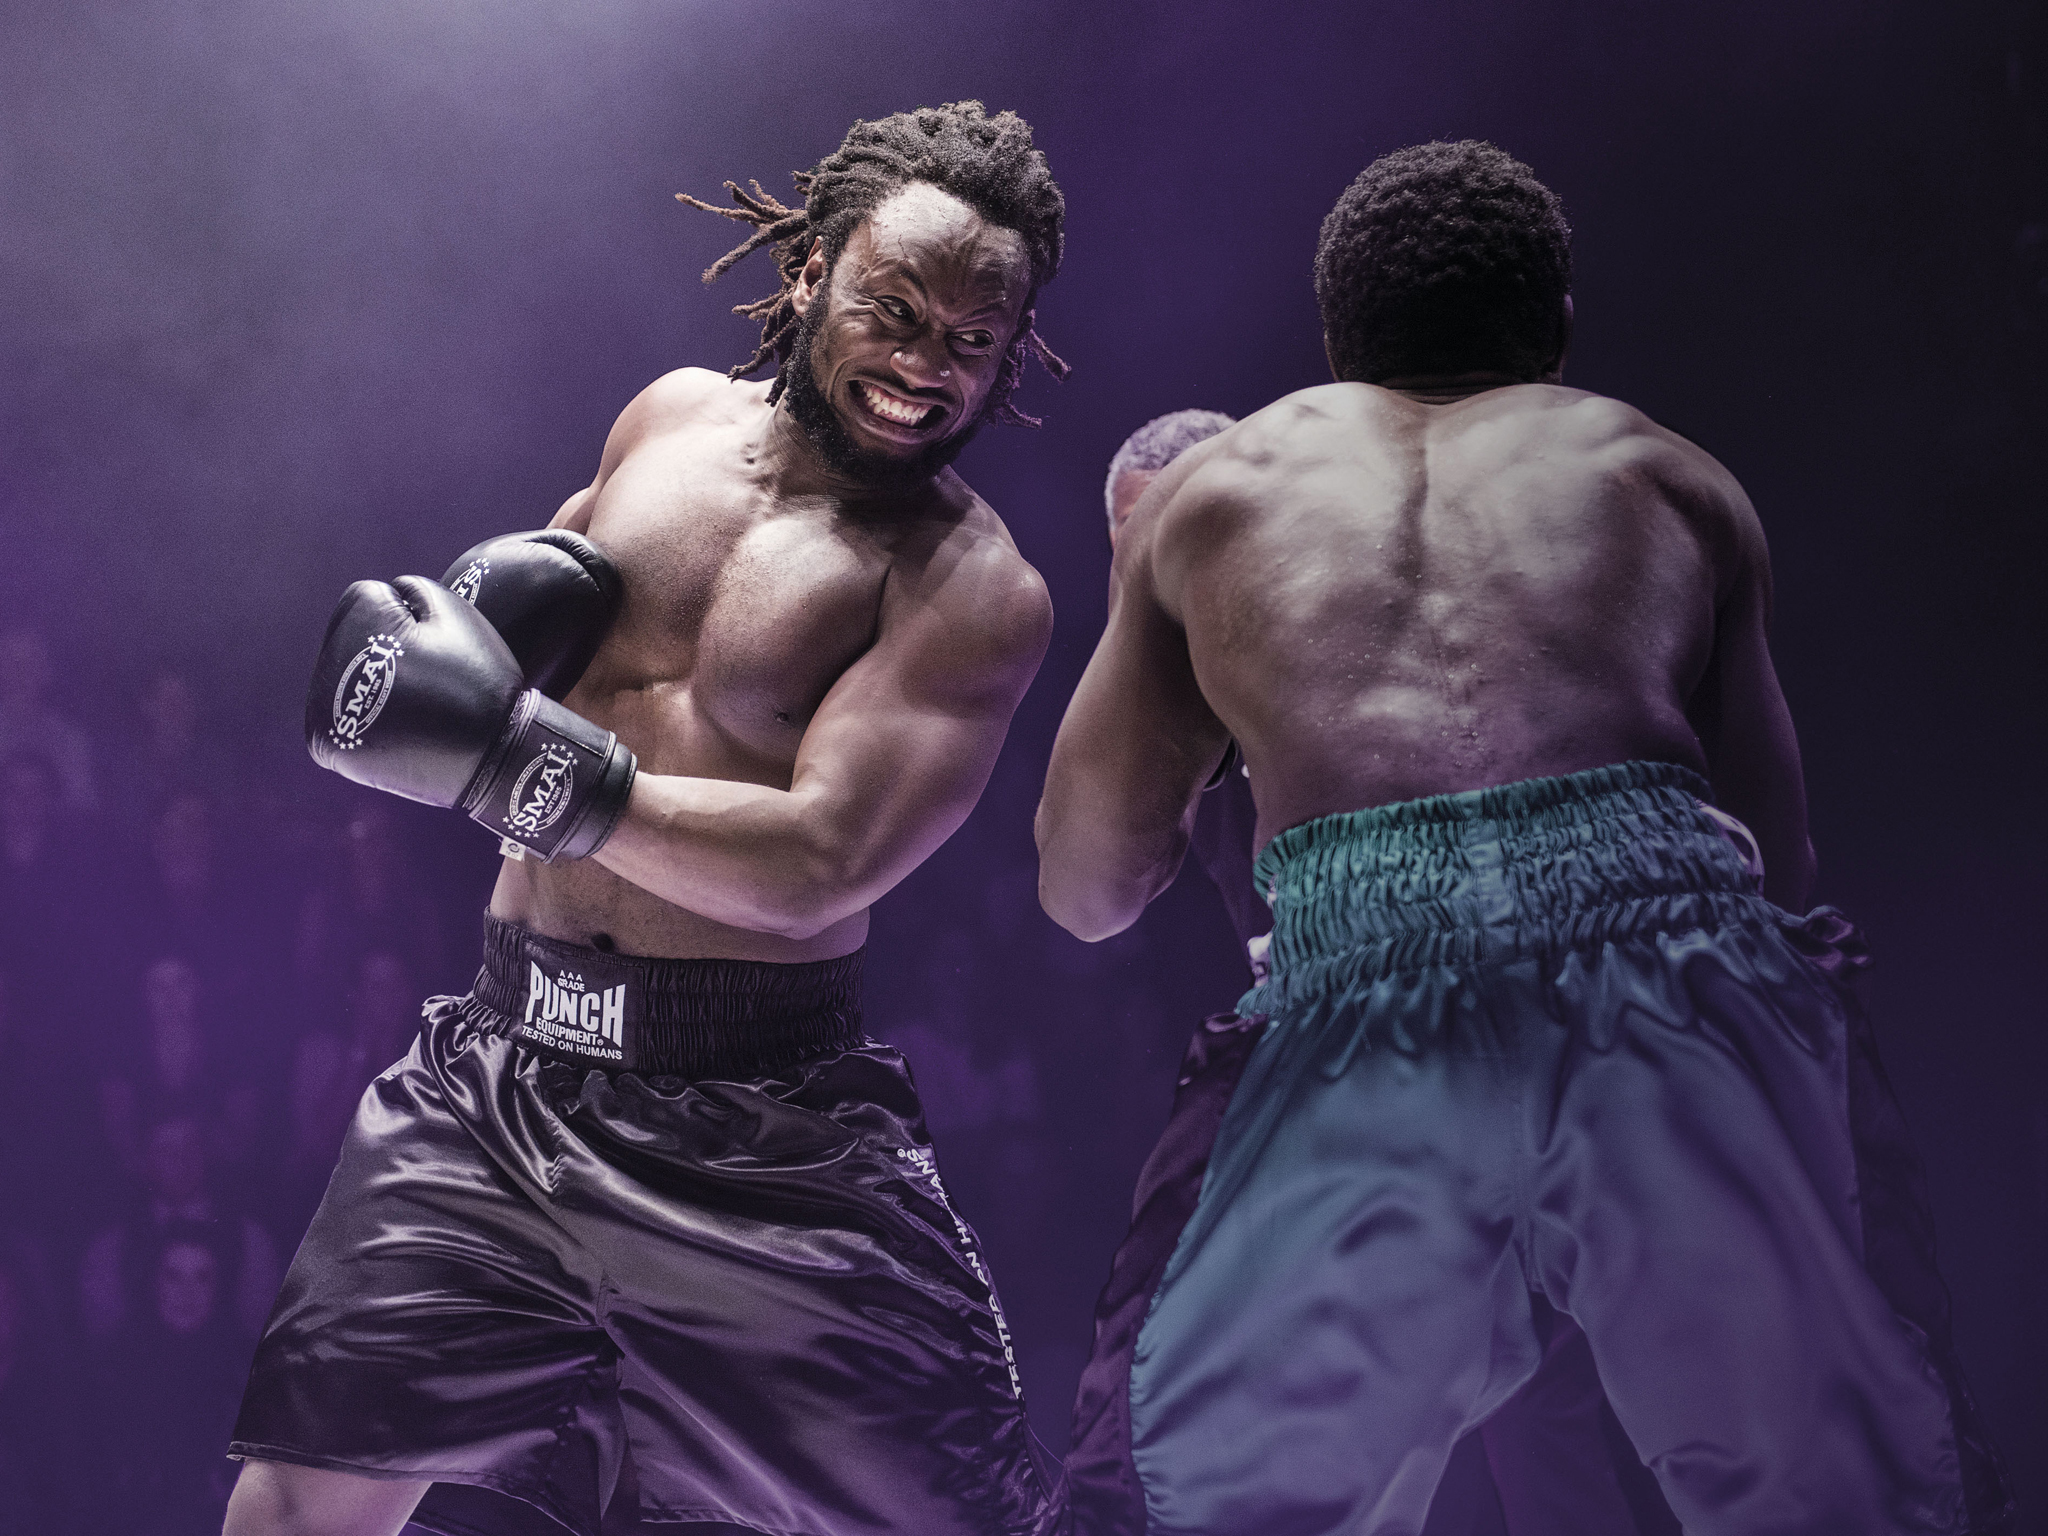 Prize Fighter 2017 Belvoir hero image feat Gideon Mzembe and Pacharo Mzembe photographer credit Dylan Evans